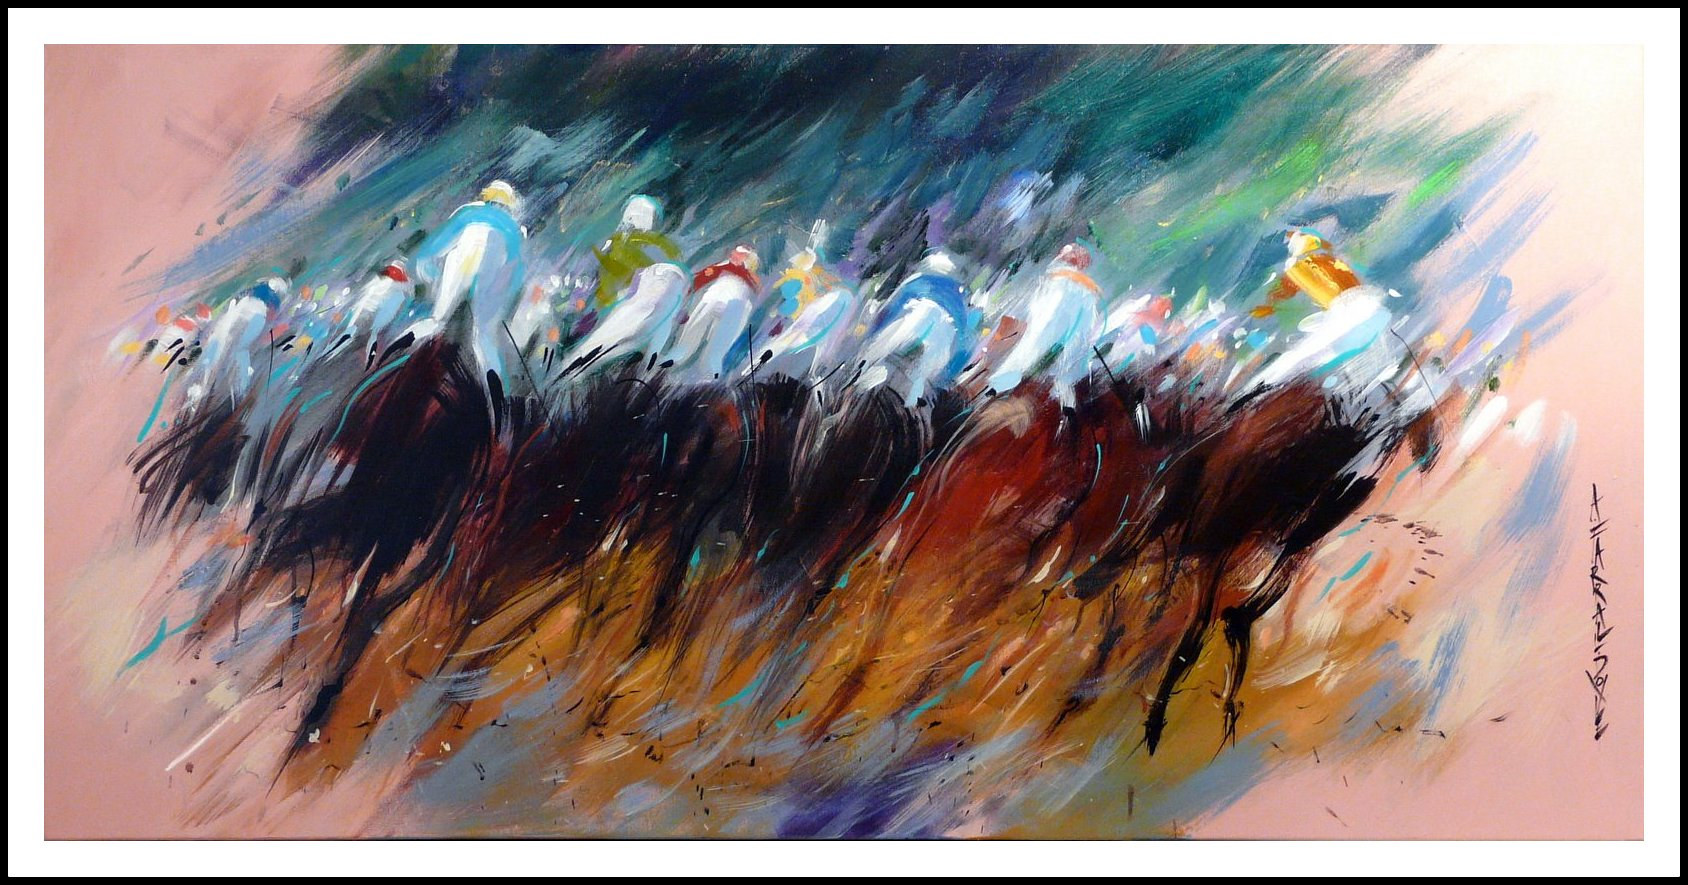 Oil painting Roaring Past 12x35 oil on canvas by Anne Farrall Doyle